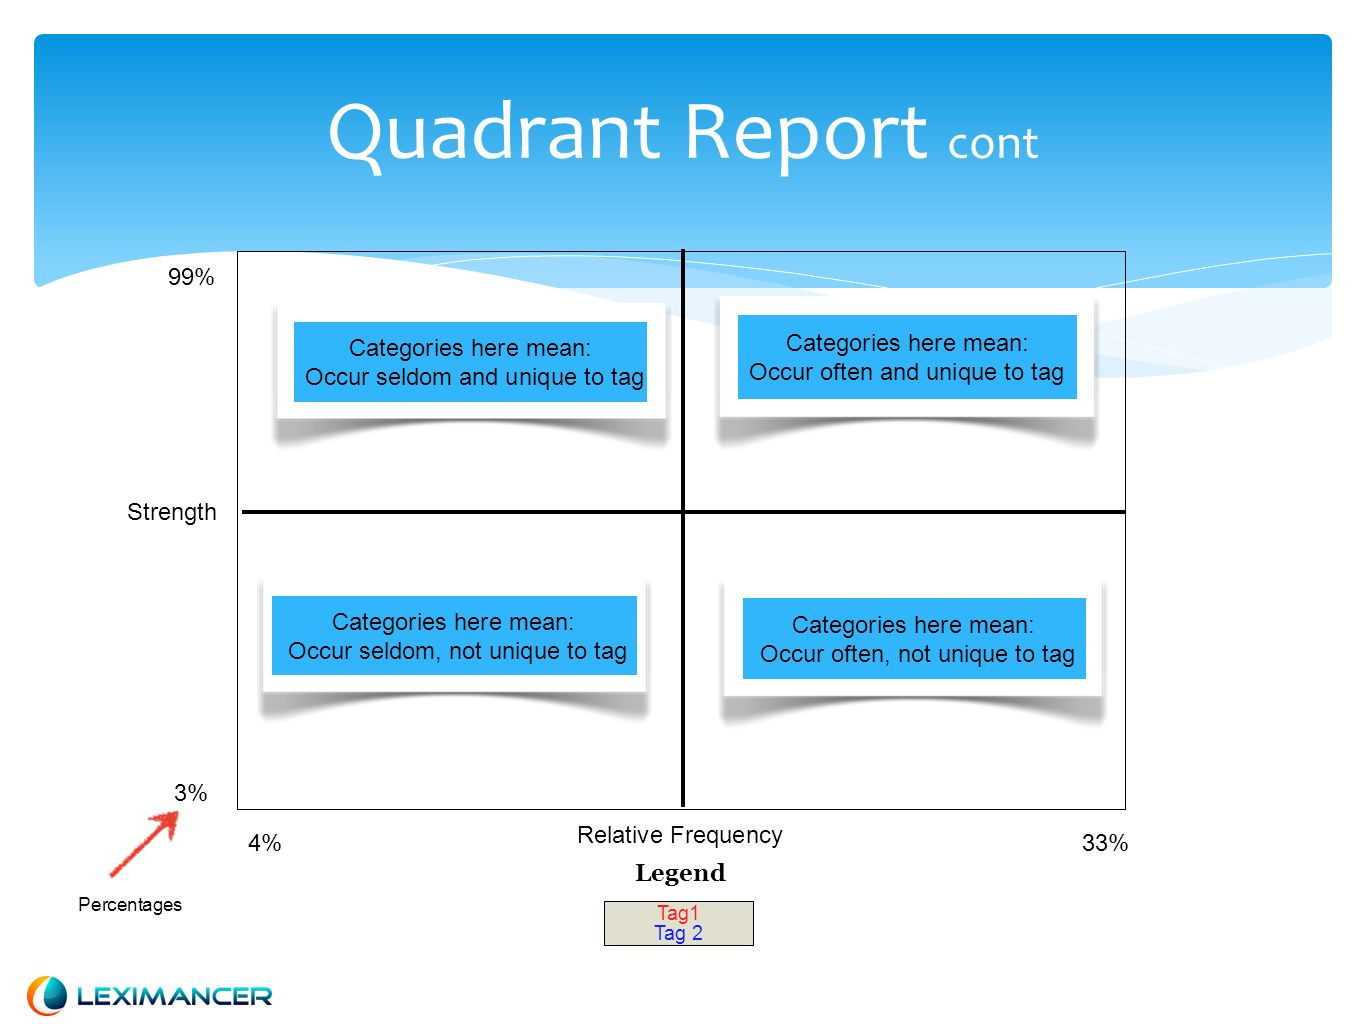 Quadrant Report cont Relative Frequency 99% 3% 33%4% Strength Legend Percentages Categories here mean: Occur often and unique to tag Categories here m